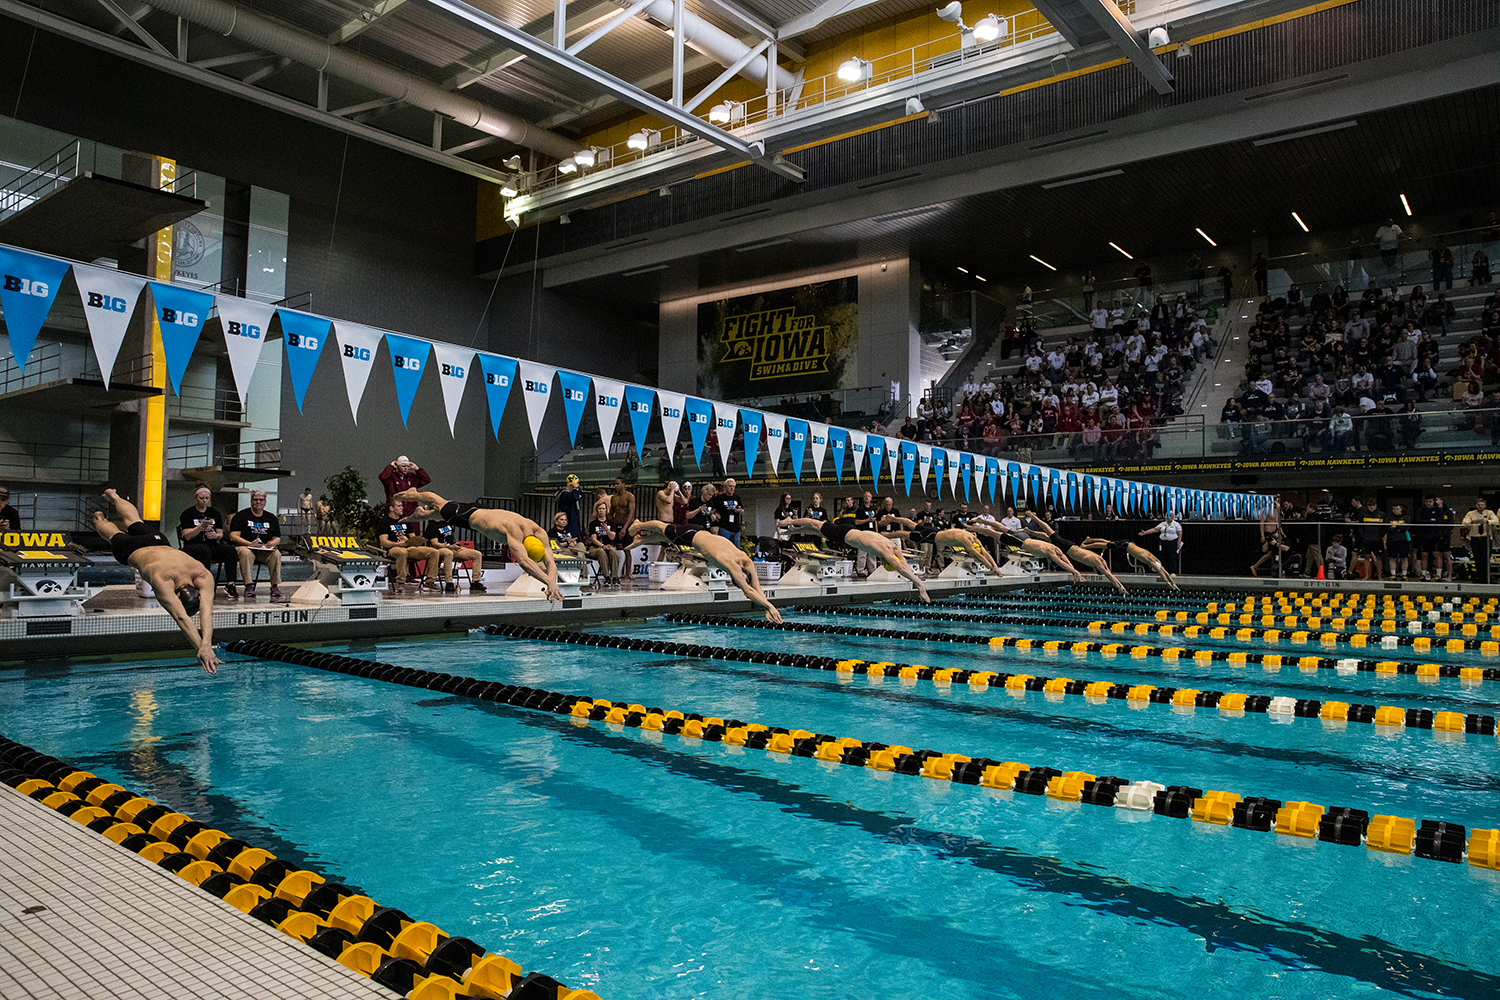 Swimmers+jump+from+the+block+in+the+500+yard+freestyle+during+the+second+day+of+the+2019+Big+Ten+Men%27s+Swimming+and+Diving+Championships+at+the+CRWC+on+Thursday%2C+February+28%2C+2019.+